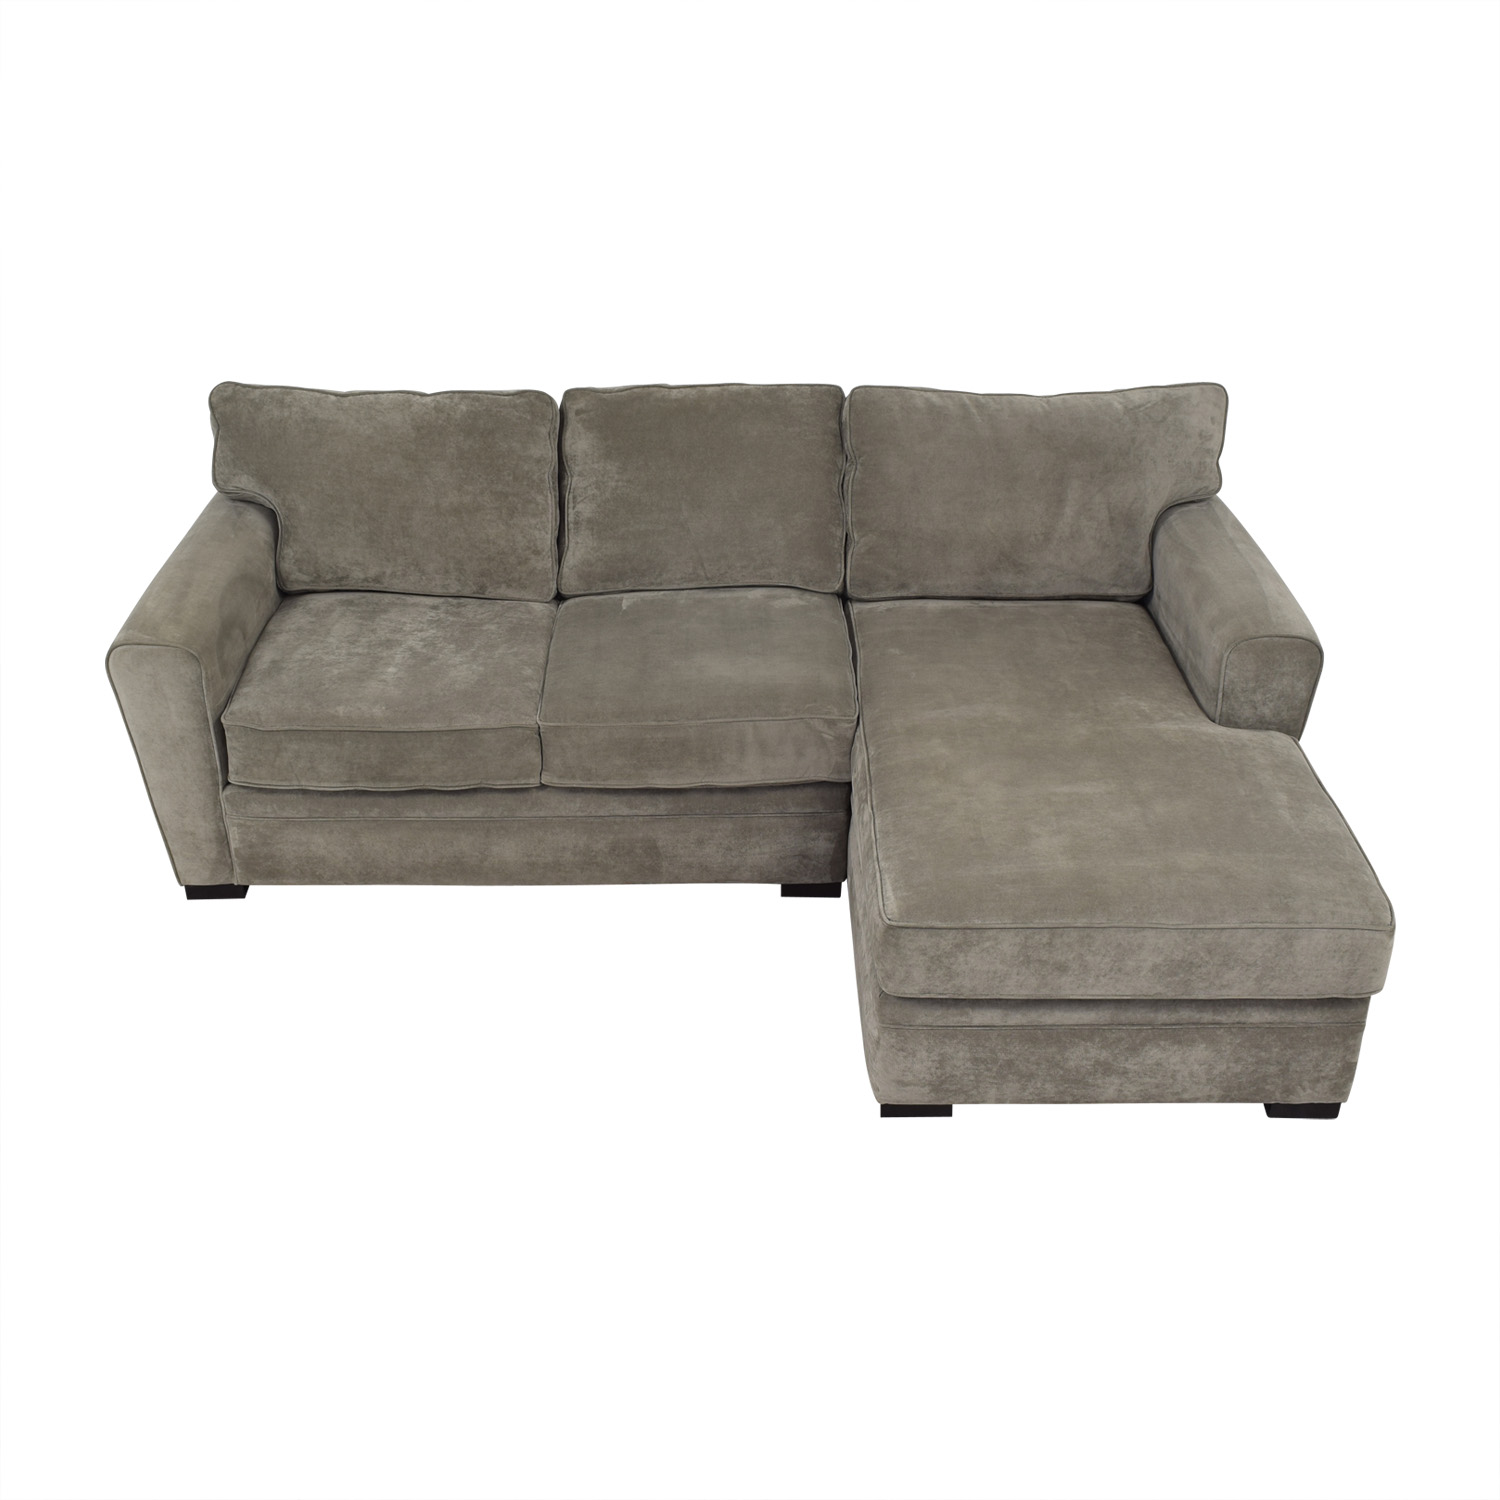 Raymour & Flanigan Raymour & Flanigan Artemis II Sectional Sofa with Chaise Sectionals